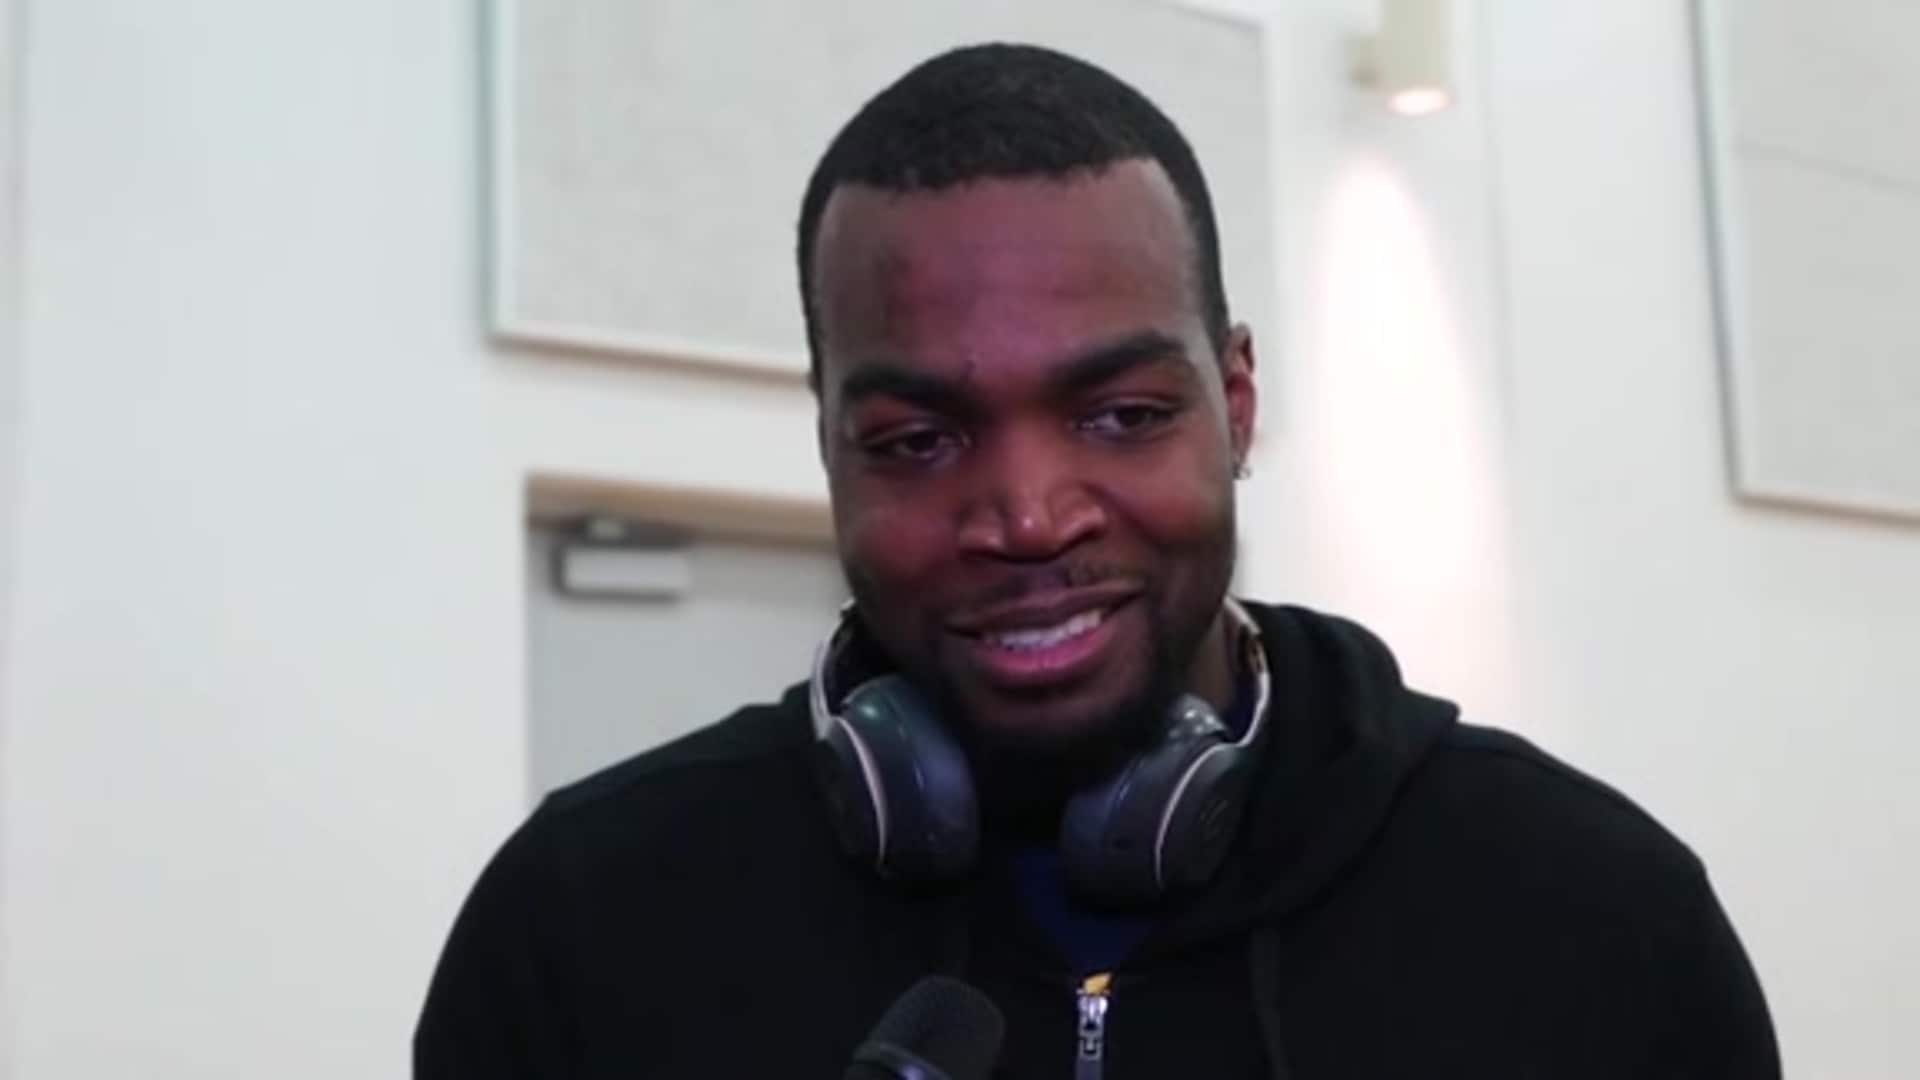 Paul Millsap discusses his initiative with PGA WORKS